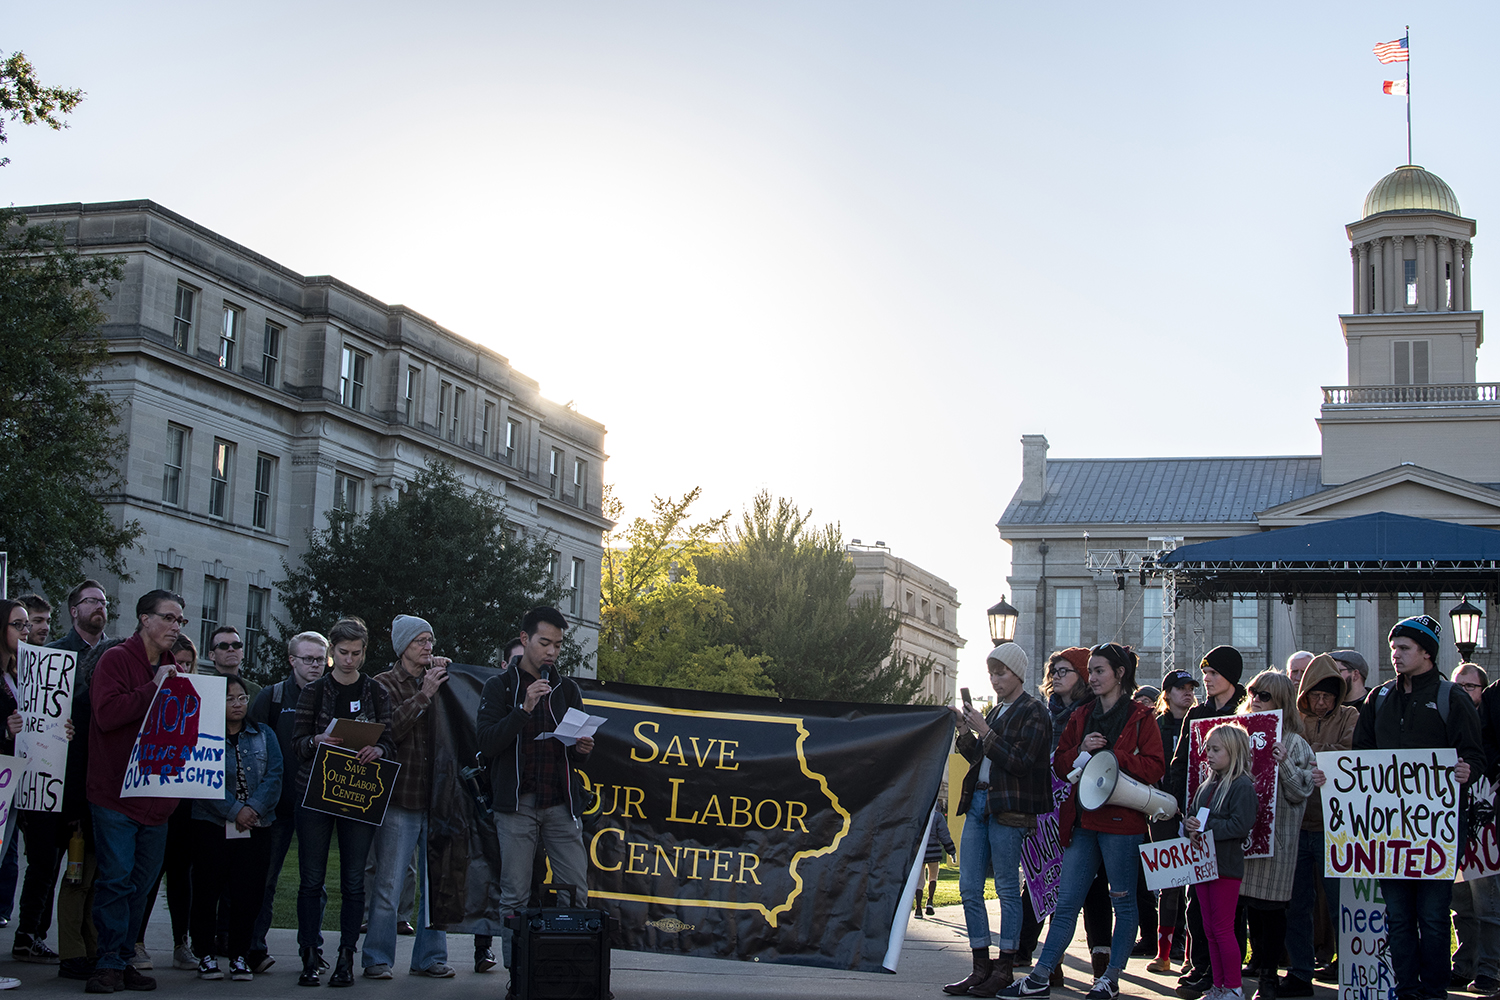 Community members gather on the Pentacrest to protest the closing of the Labor Center on Wednesday, Oct. 17, 2018.